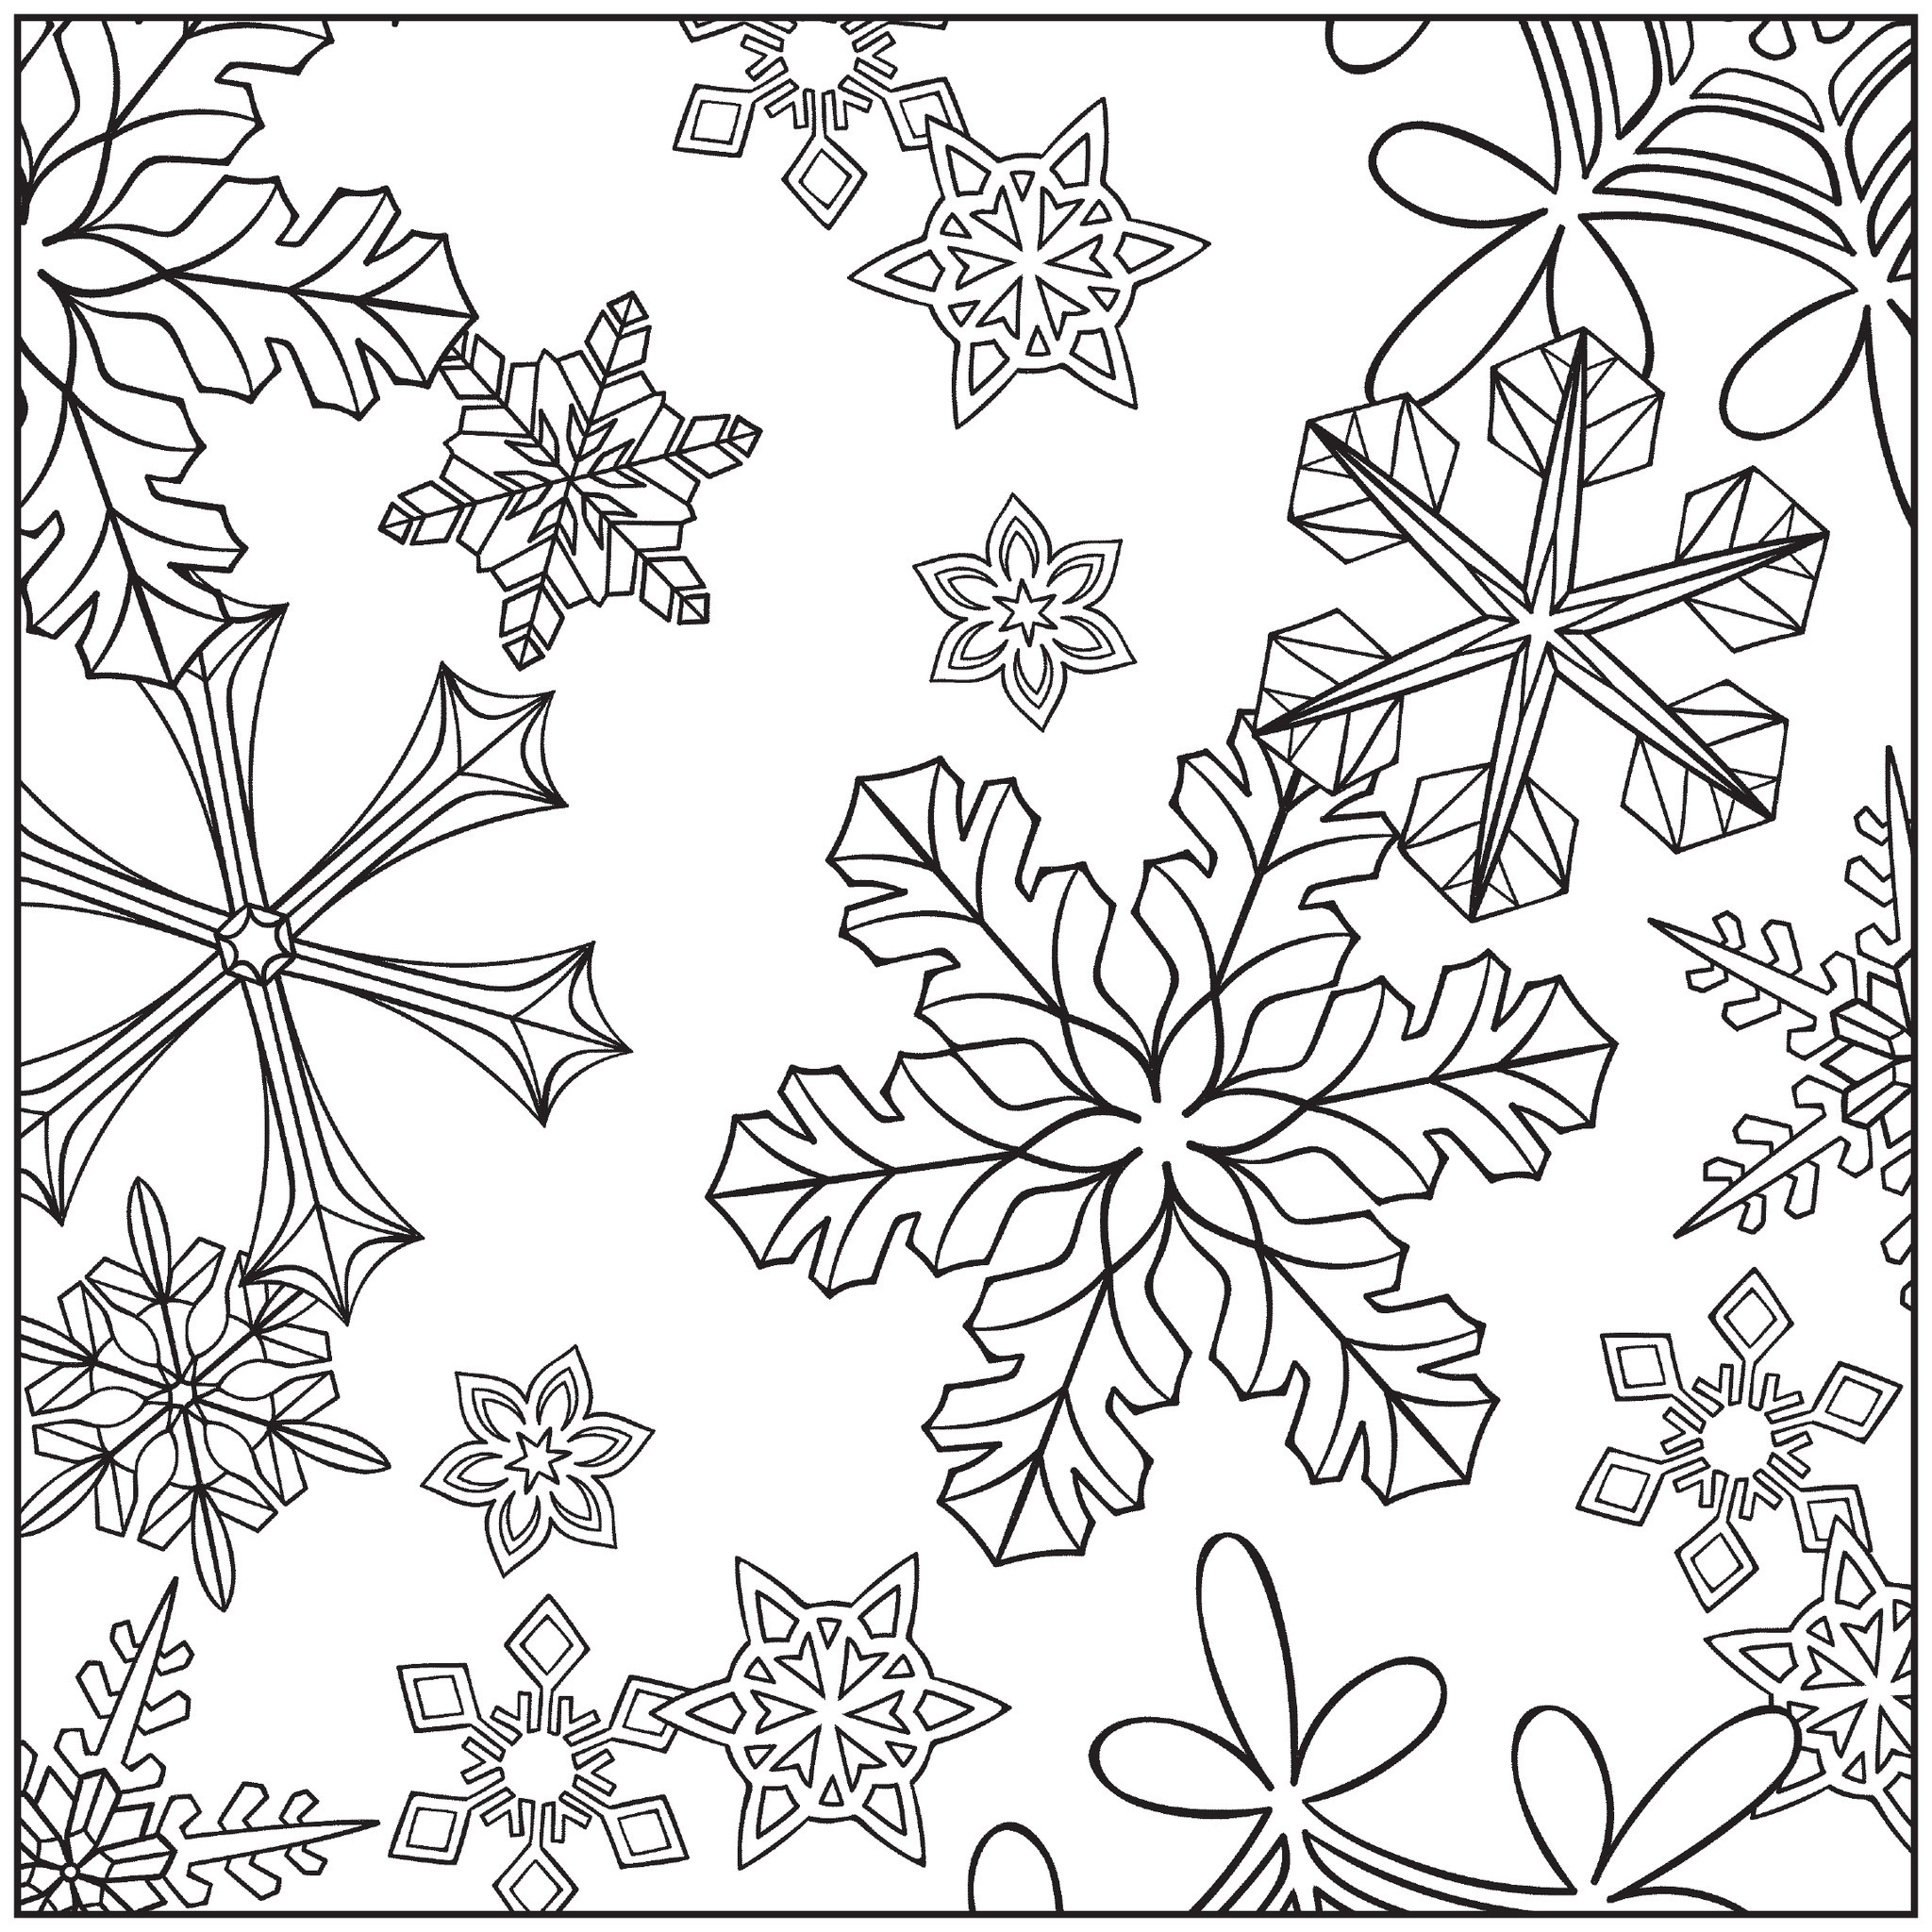 Winter Adult Coloring Pages  Winter Coloring Pages Adults